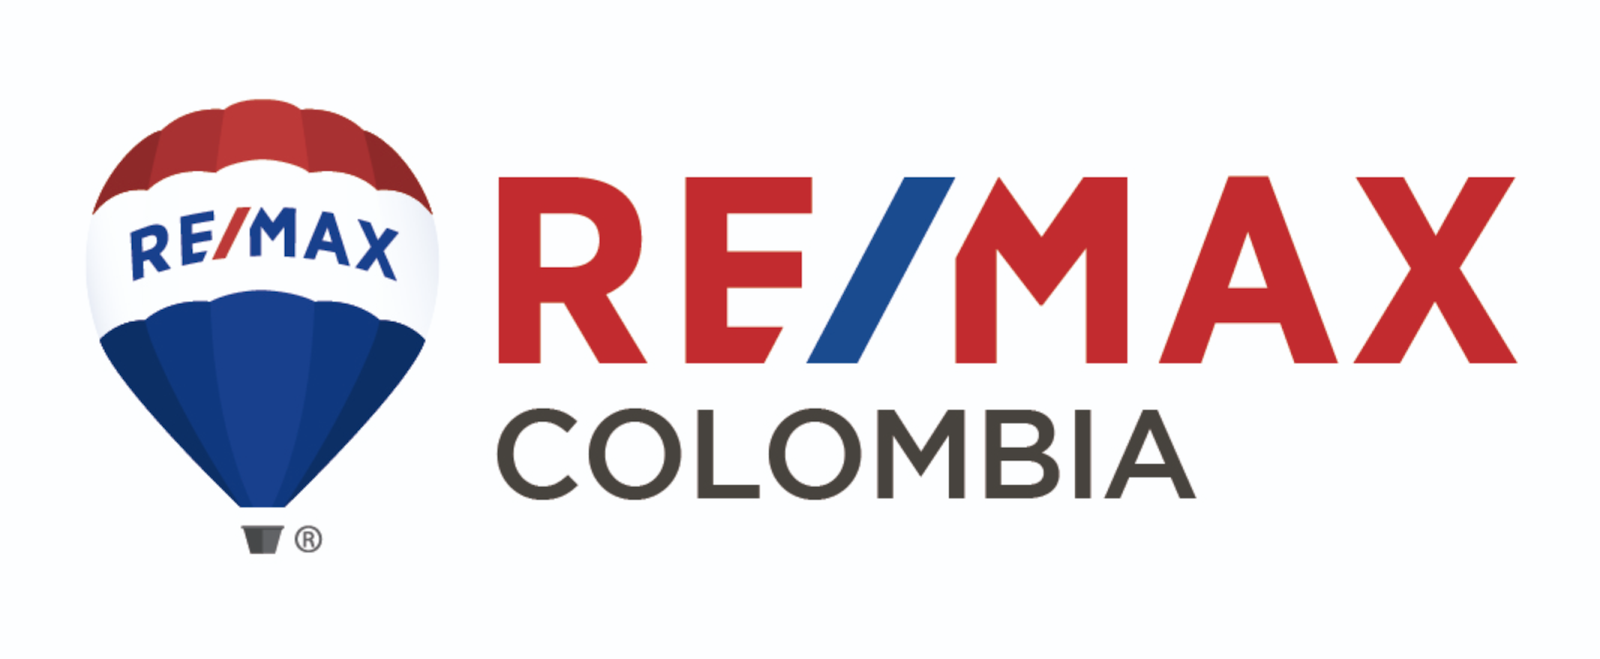 blog.remax.co